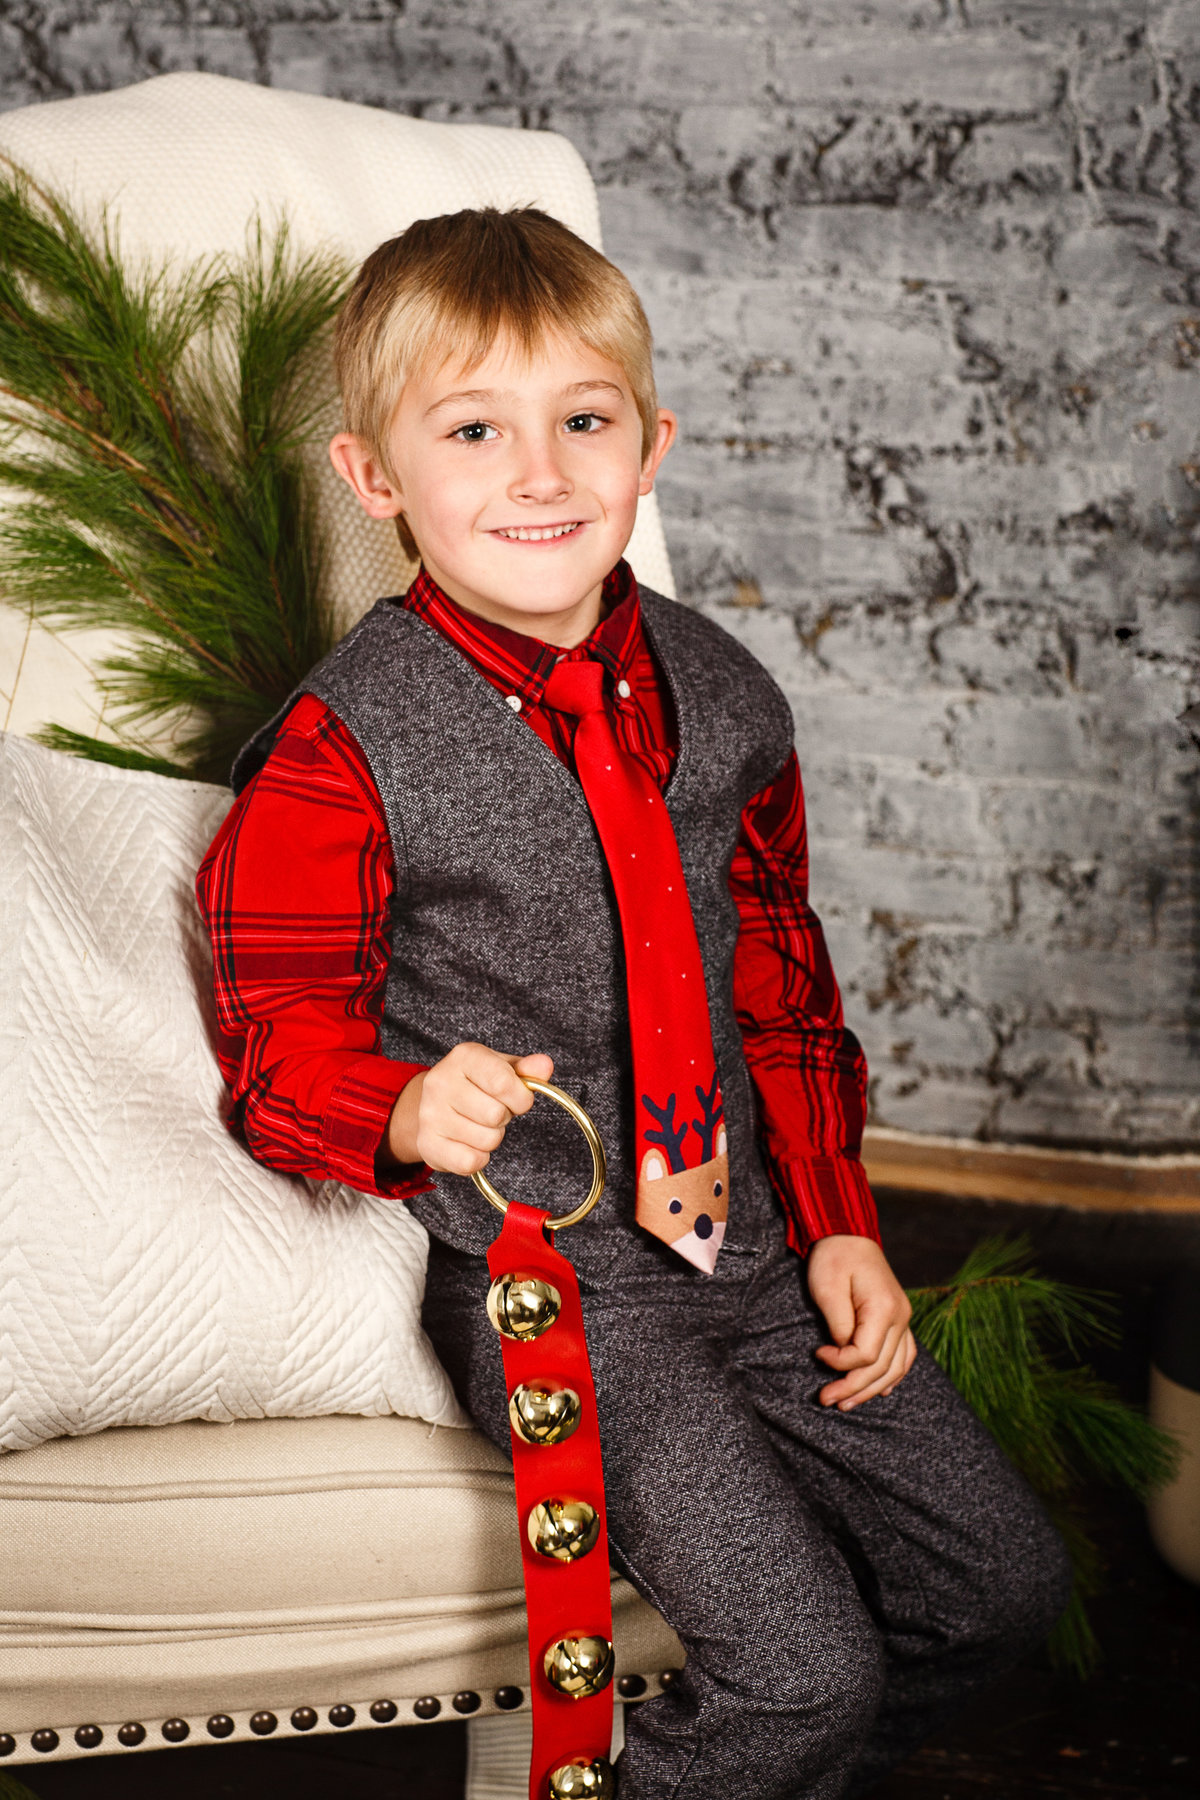 20161120_HolidayMiniSessions_Pettegrew_0012